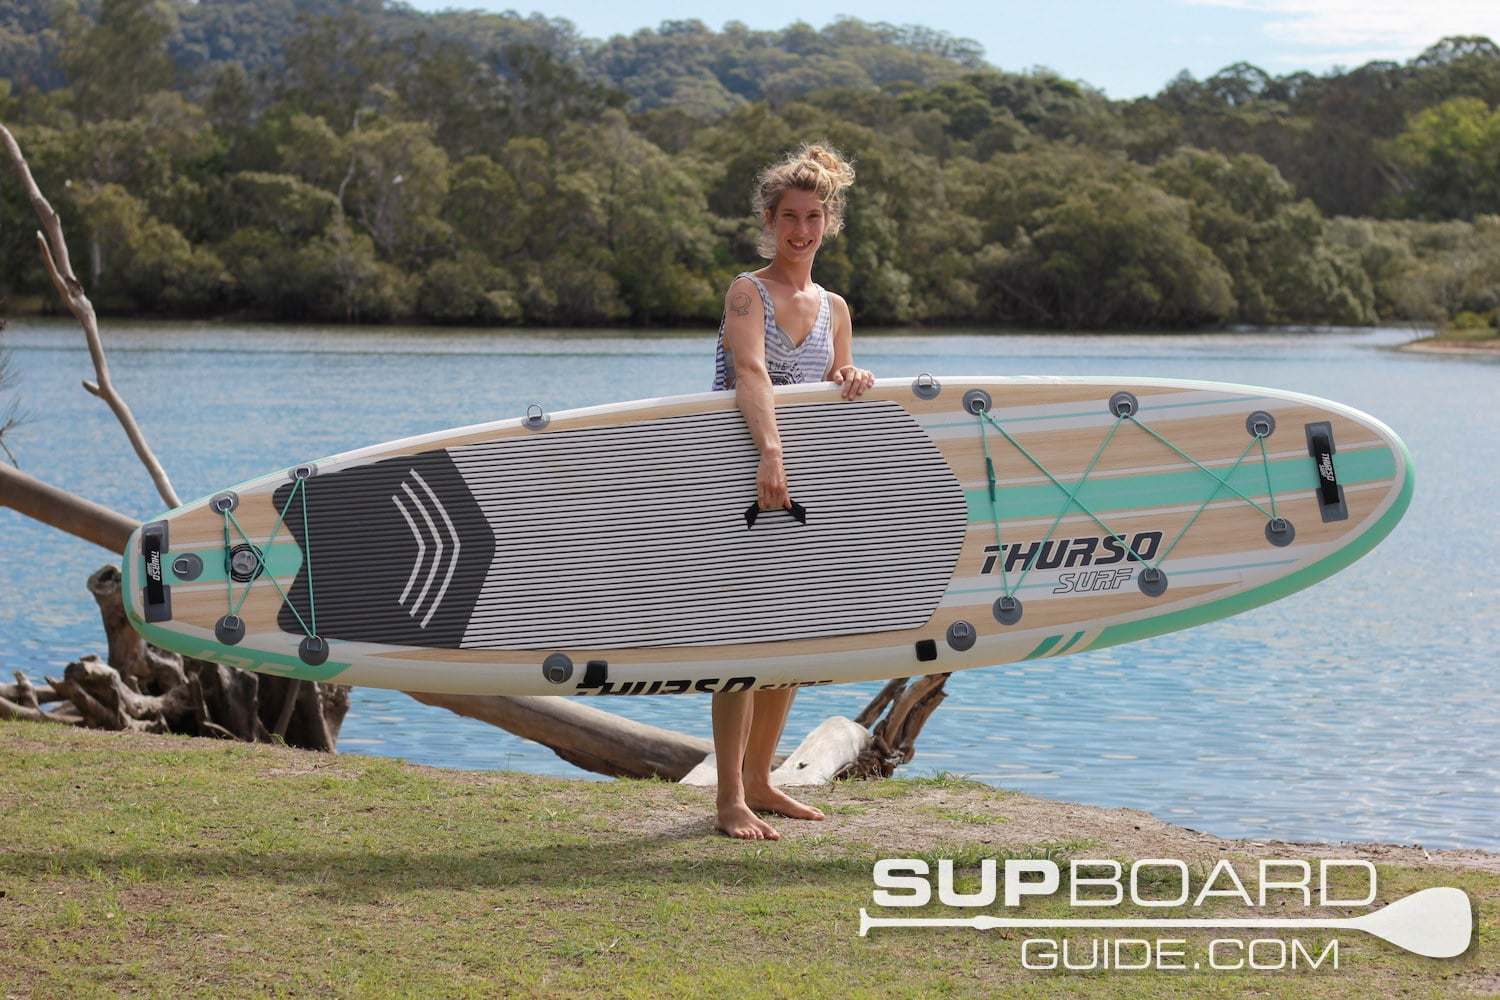 Thurso Surf Waterwalker Awarded Top-Rated All-Around SUP for 2019 by SUPBoardGuide.com